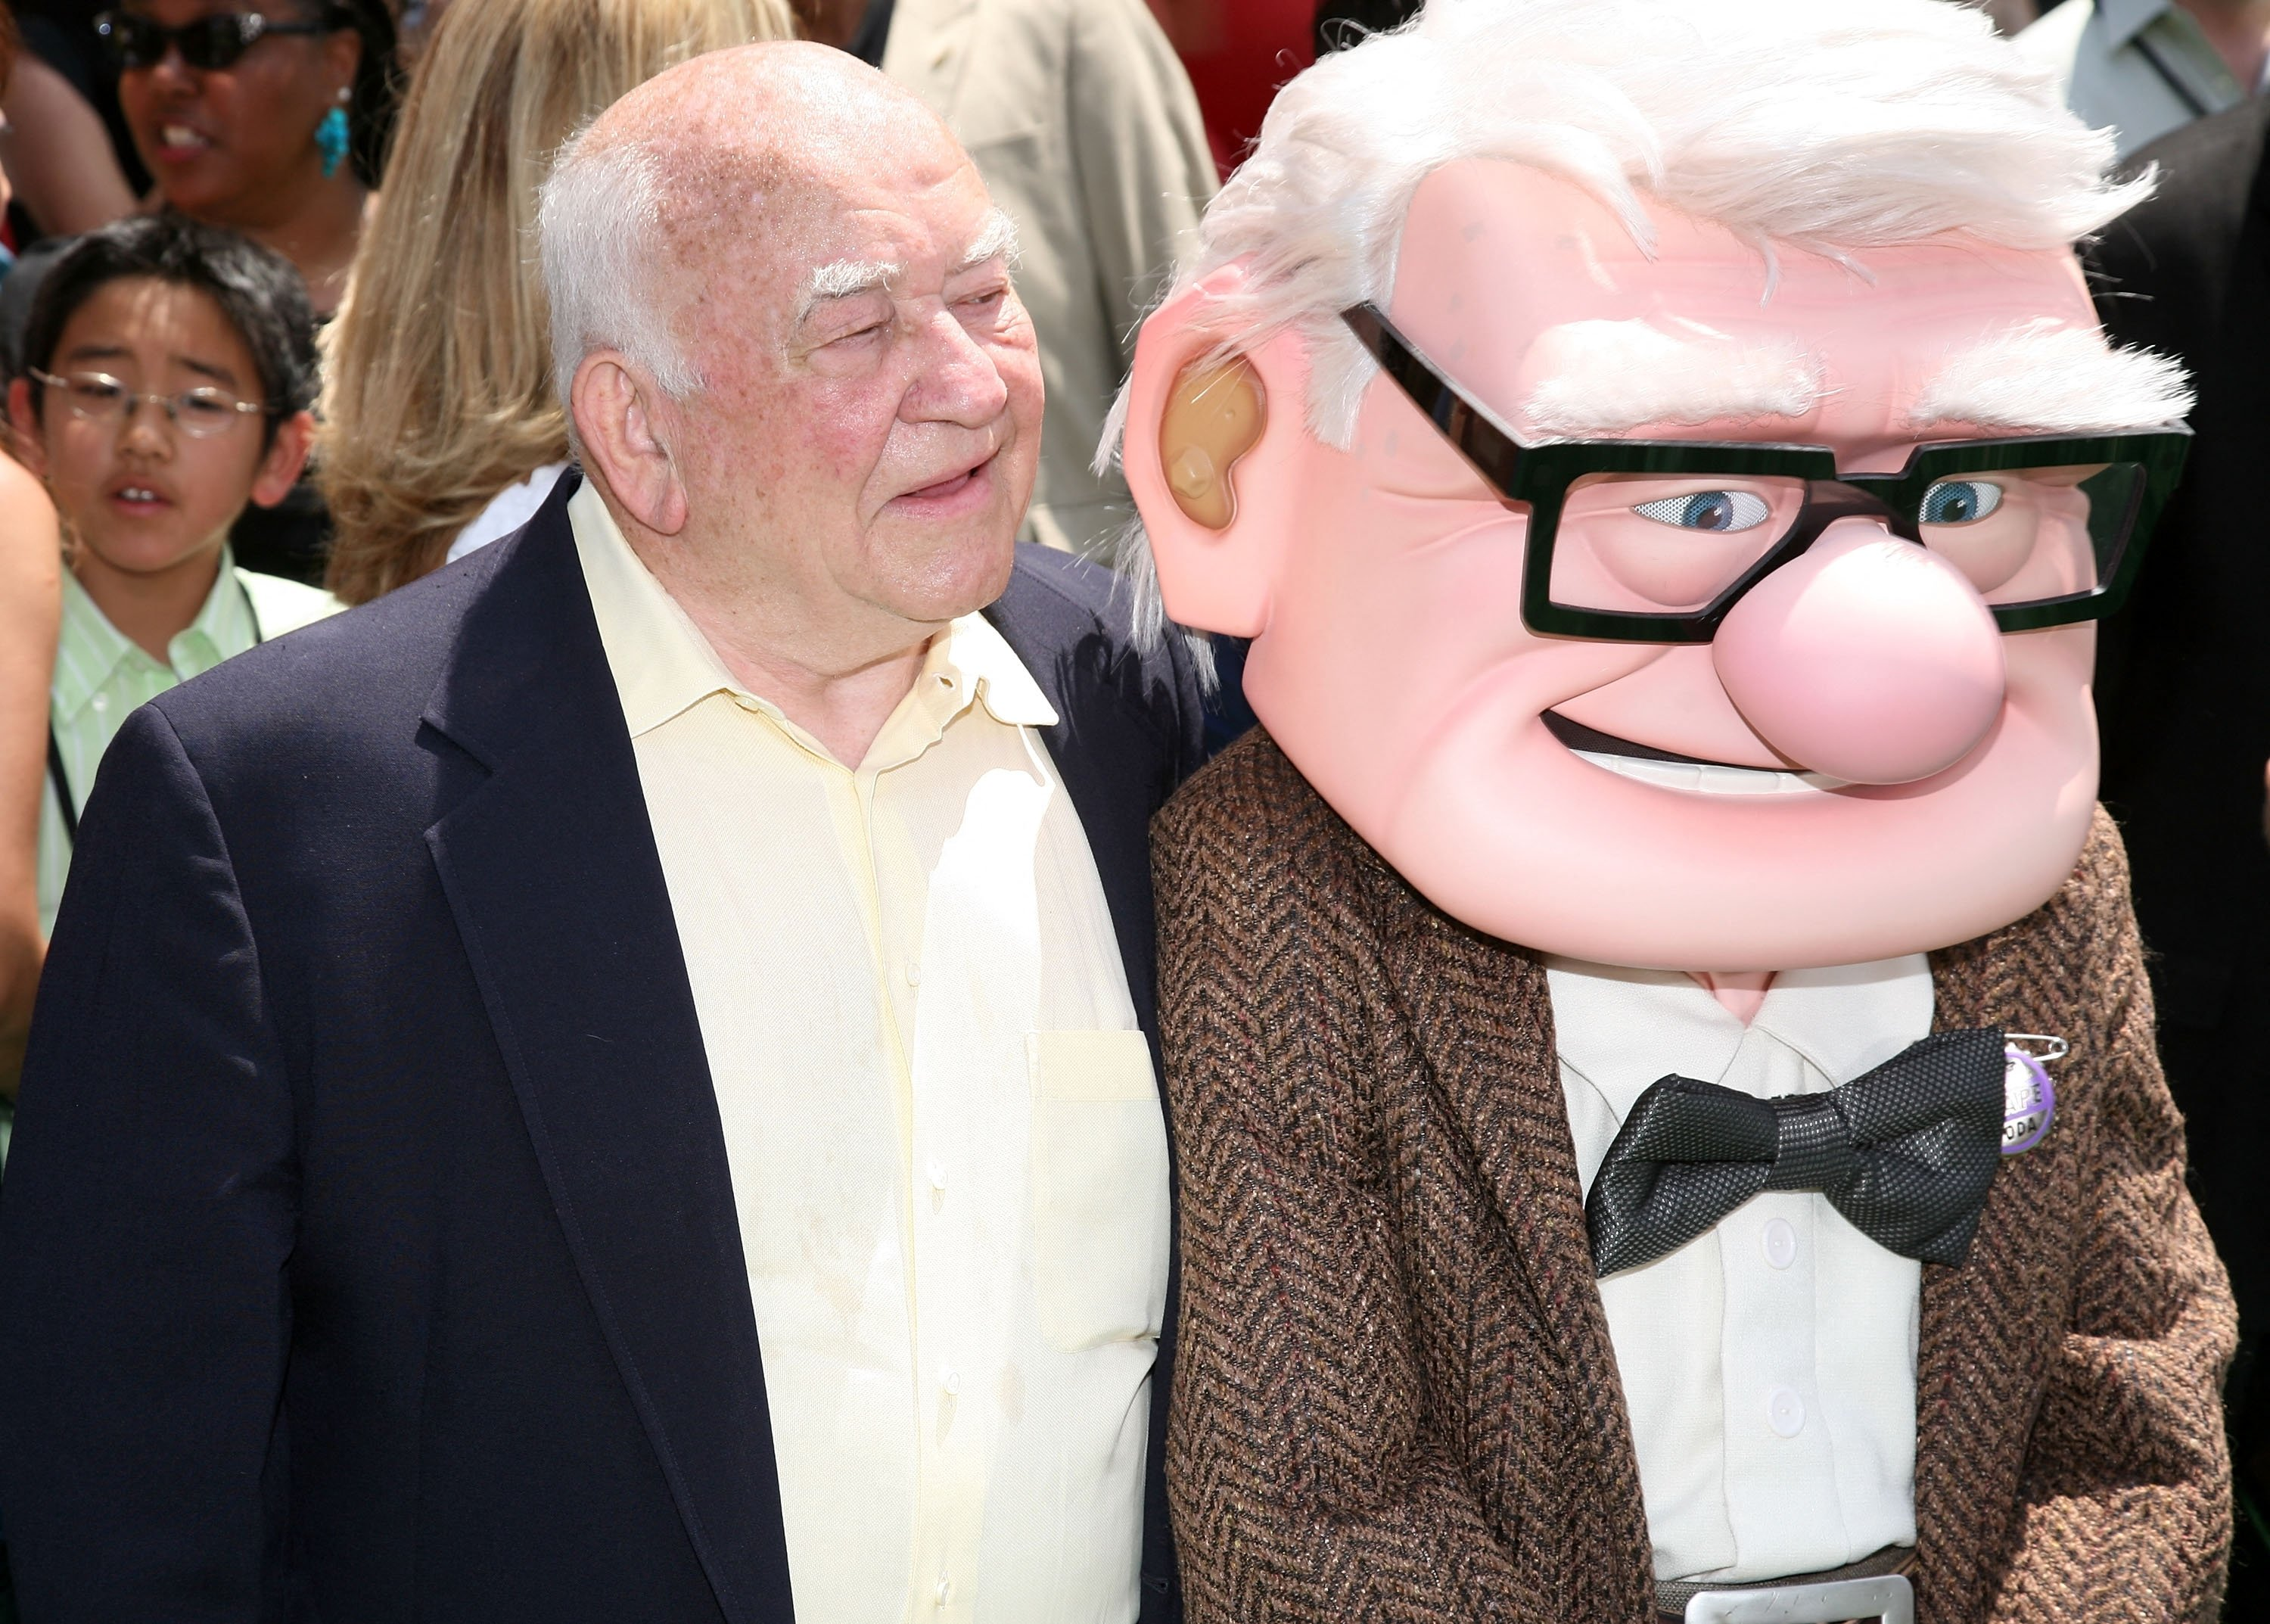 Actor Ed Asner and character Carl Fredricksen arrive for the premiere of Disney Pixar's 'Up' at the El Capitan Theatre in Hollywood on May 16, 2009. (AFP Photo)